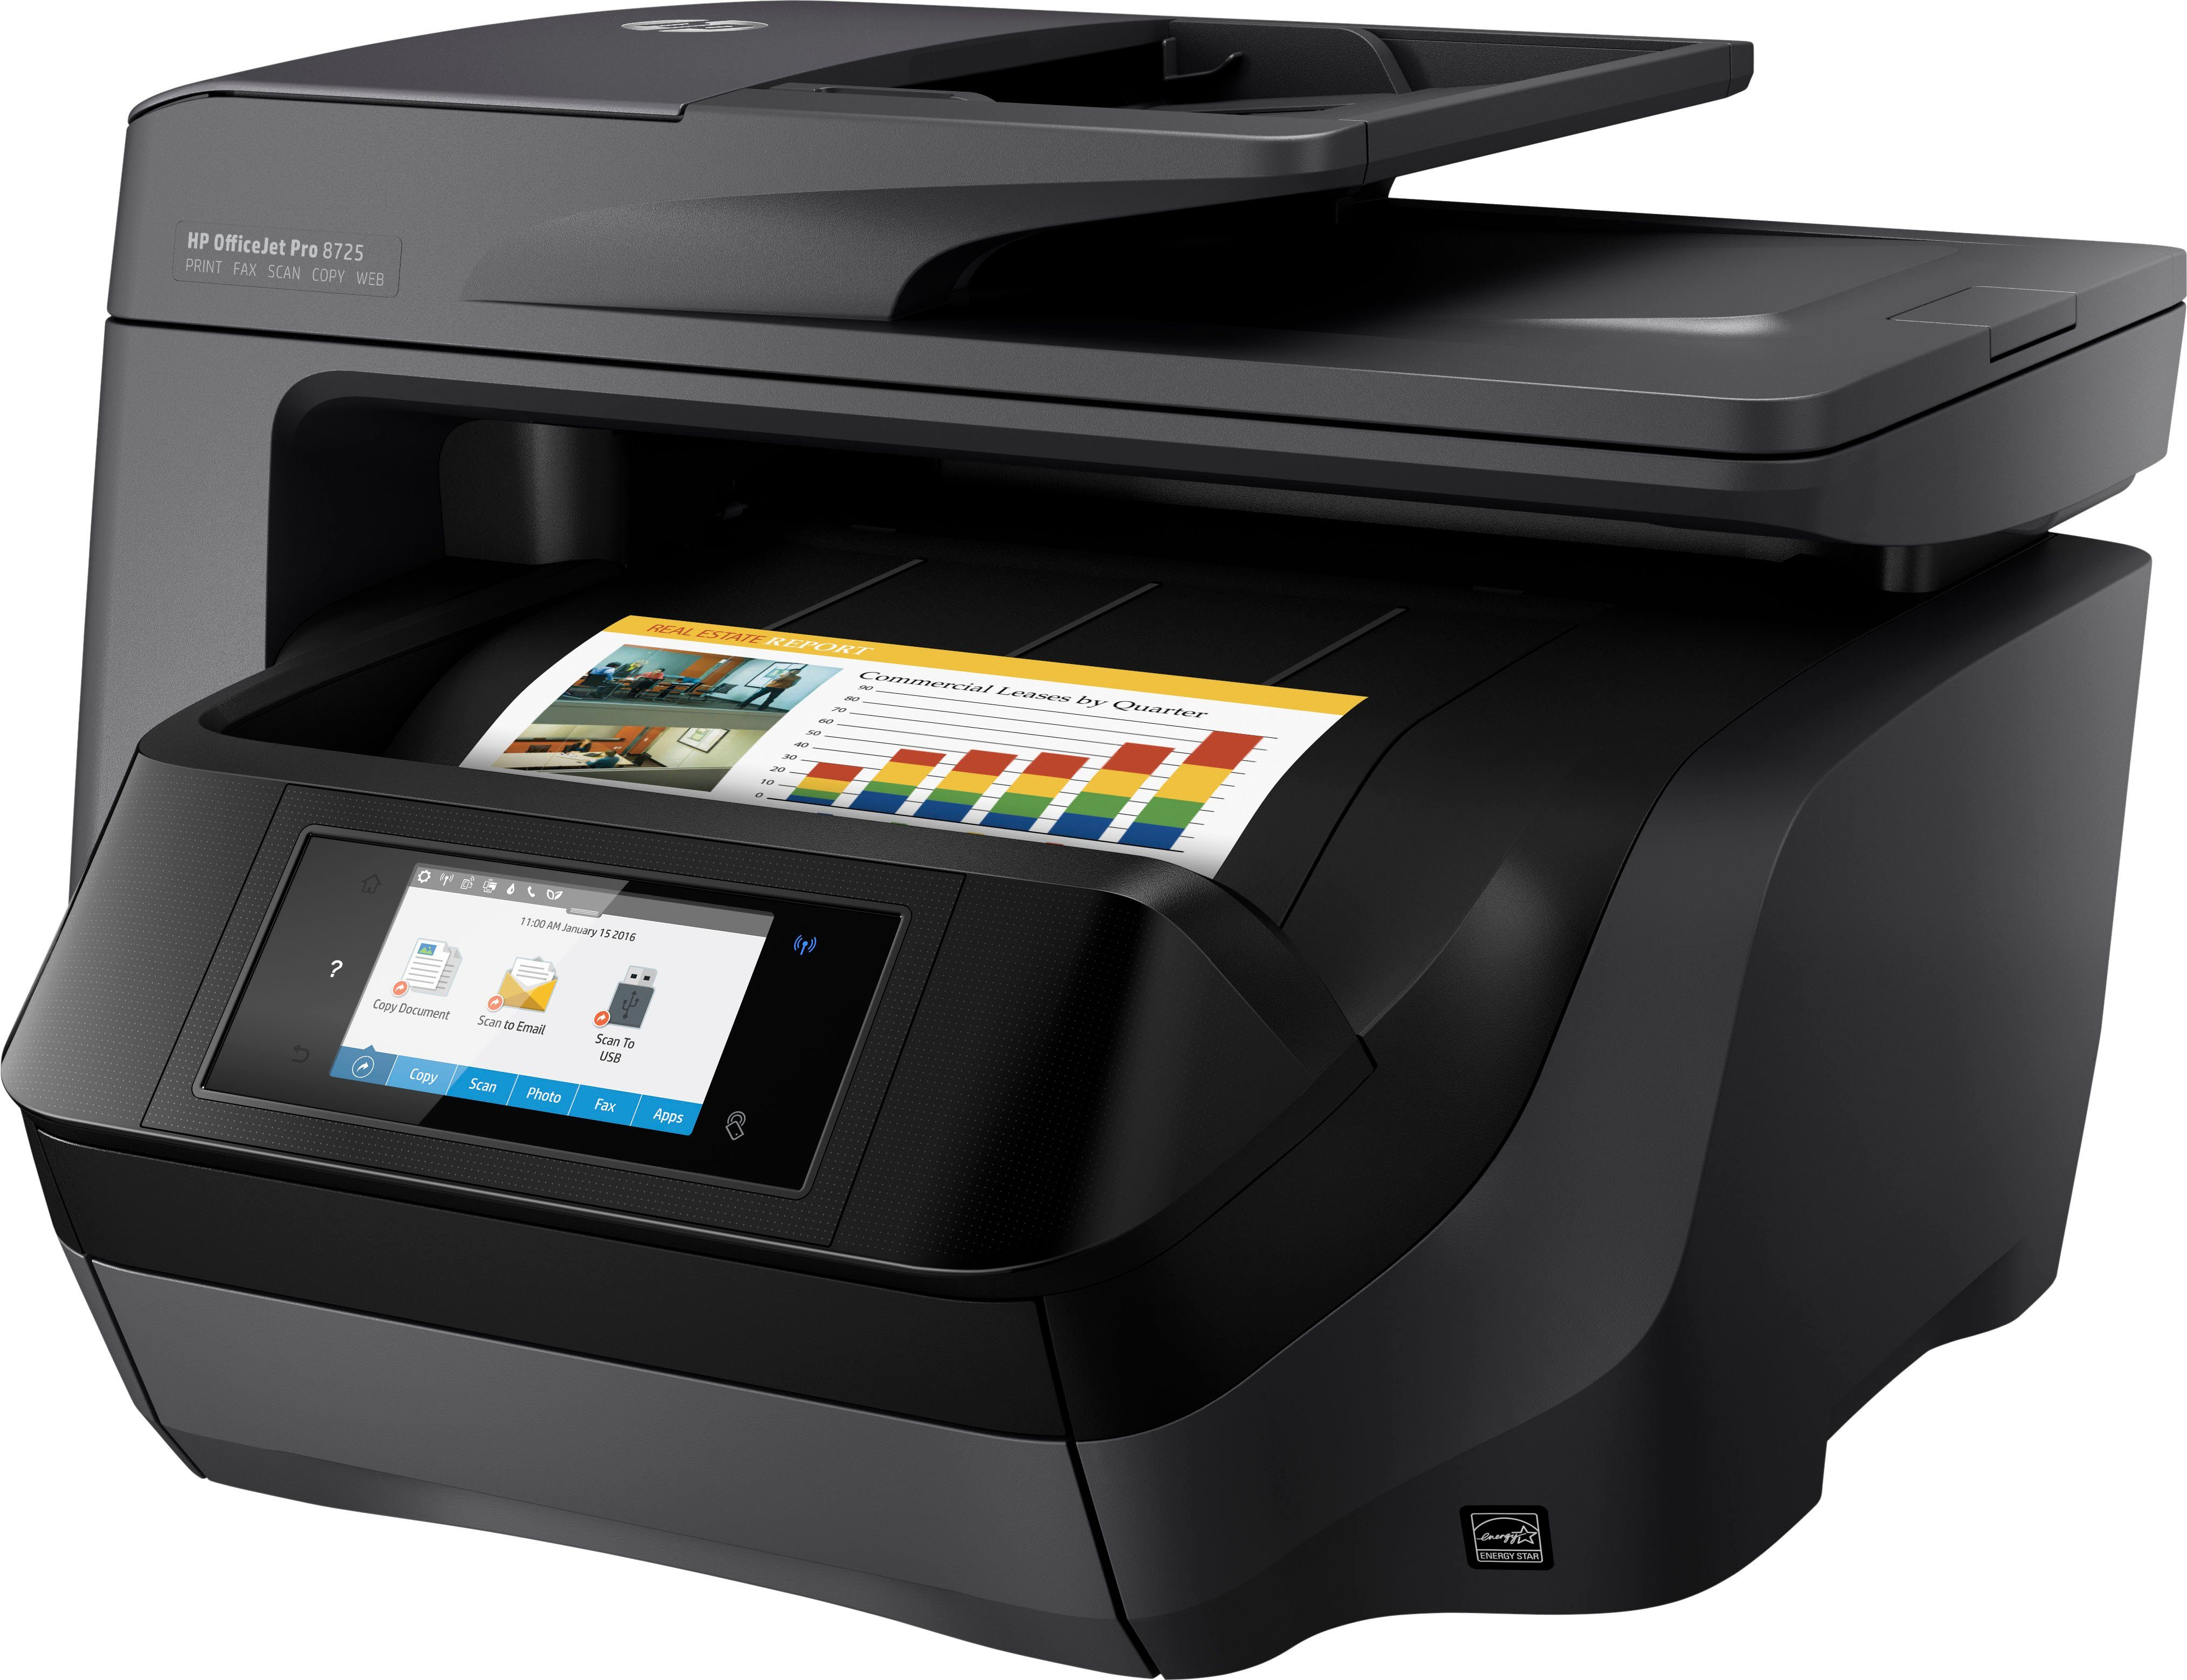 HP OfficeJet Pro 8725 Multifunktionsdrucker